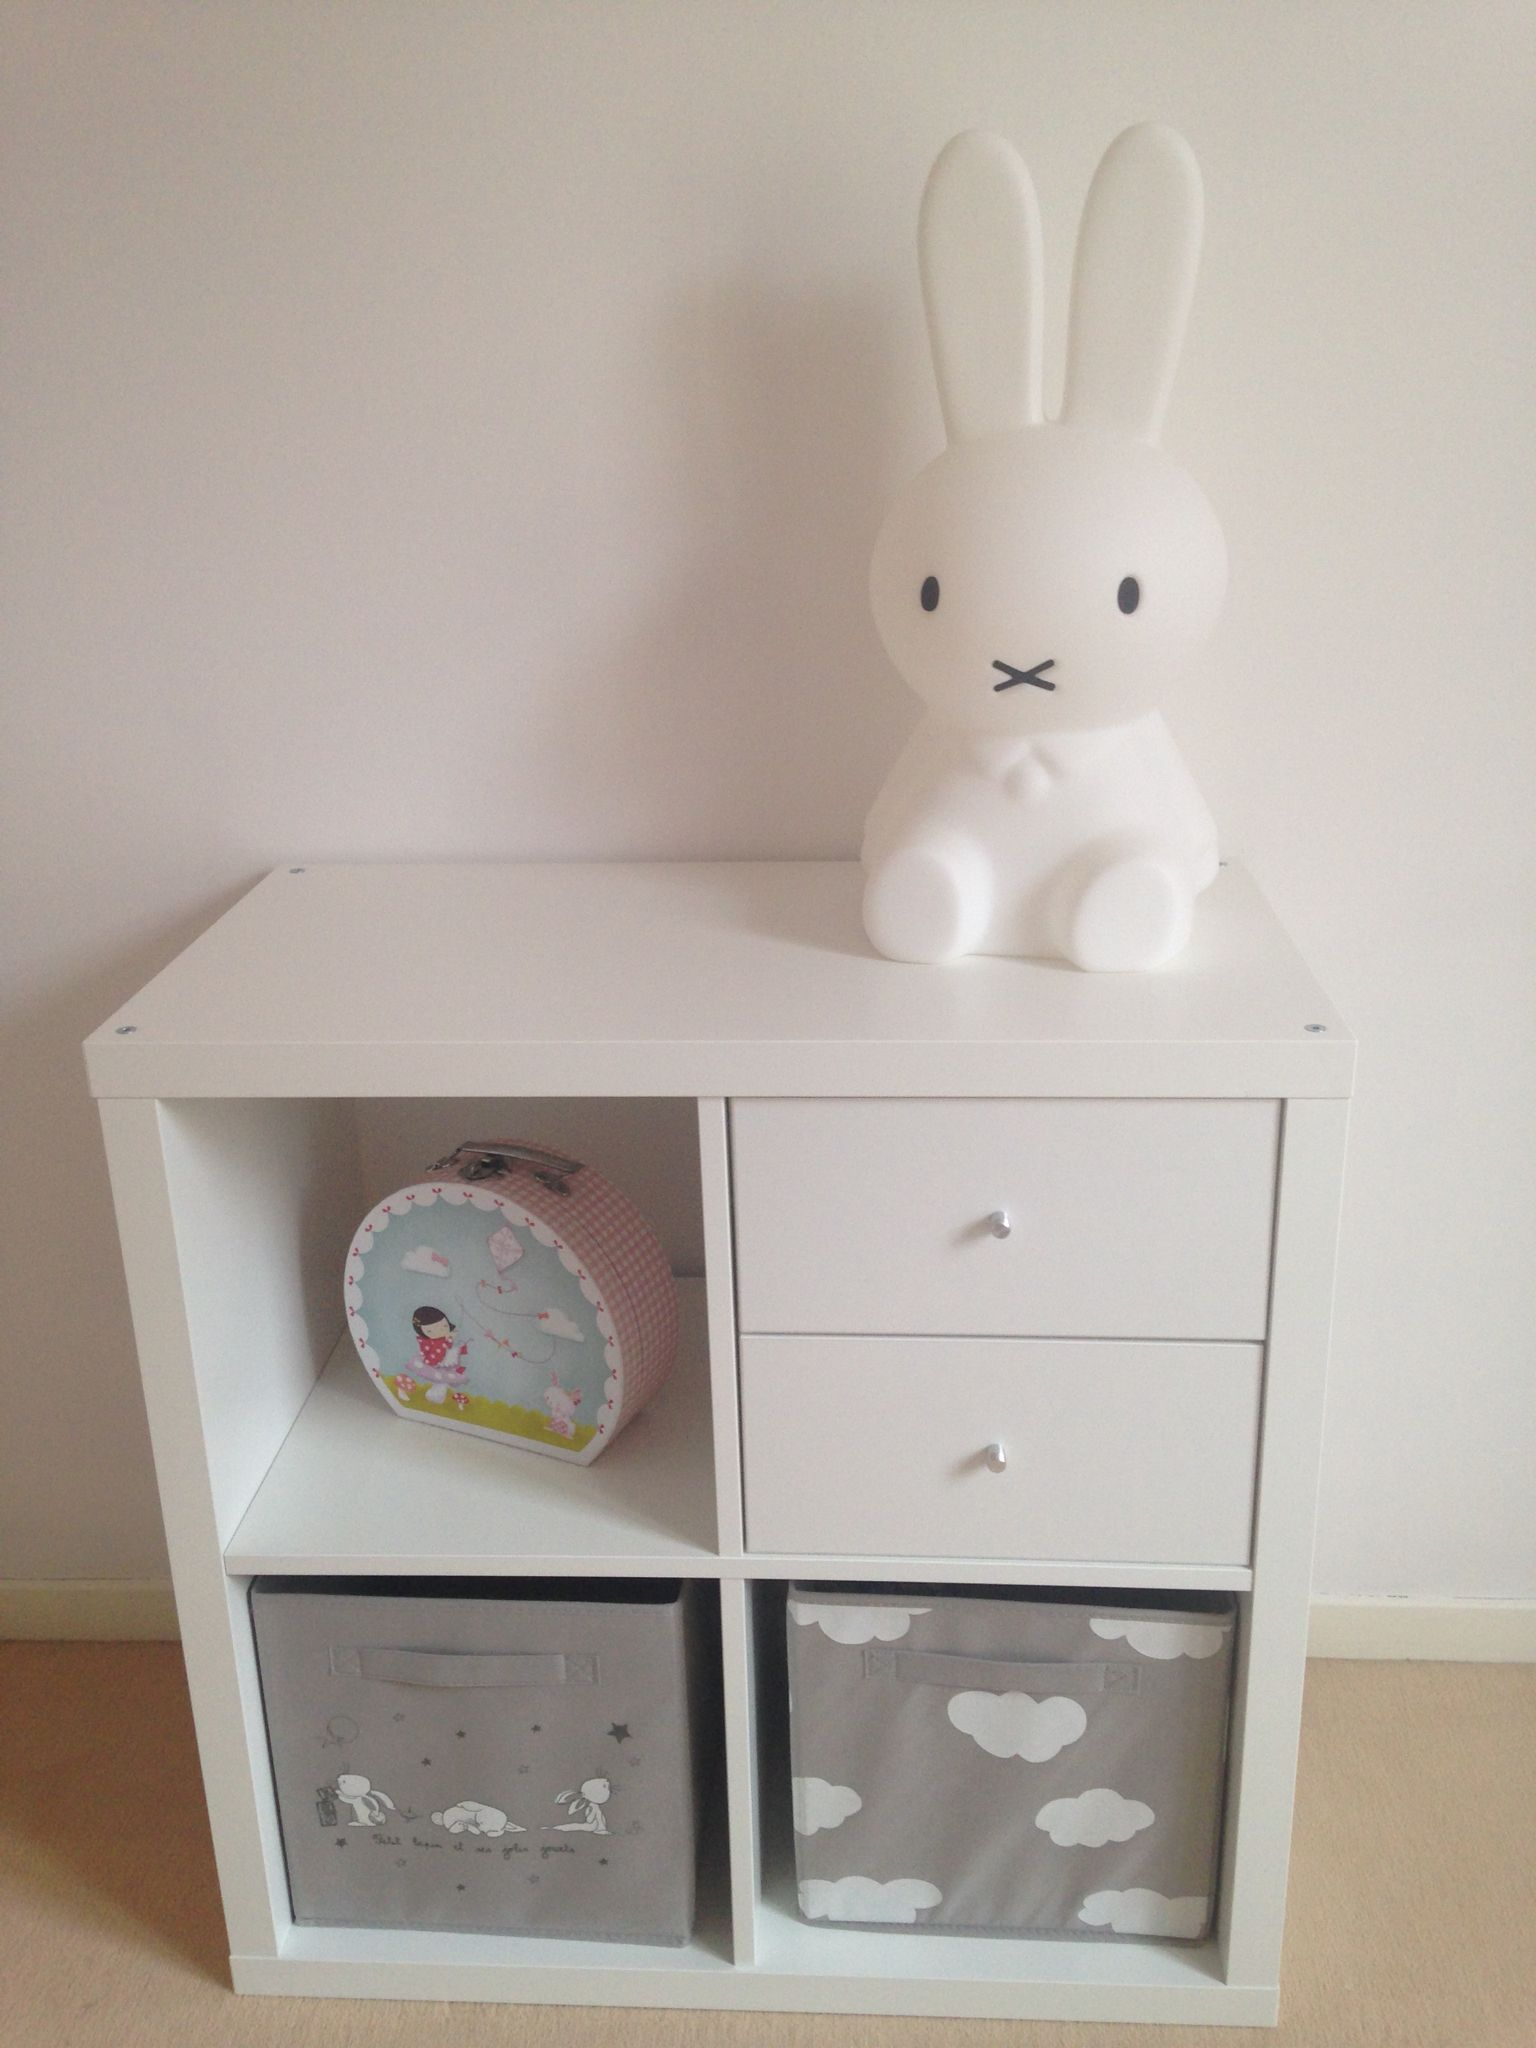 lampe miffy meuble ikea kallax bo tes de rangements kiabi chambre baby girl pinterest kids. Black Bedroom Furniture Sets. Home Design Ideas